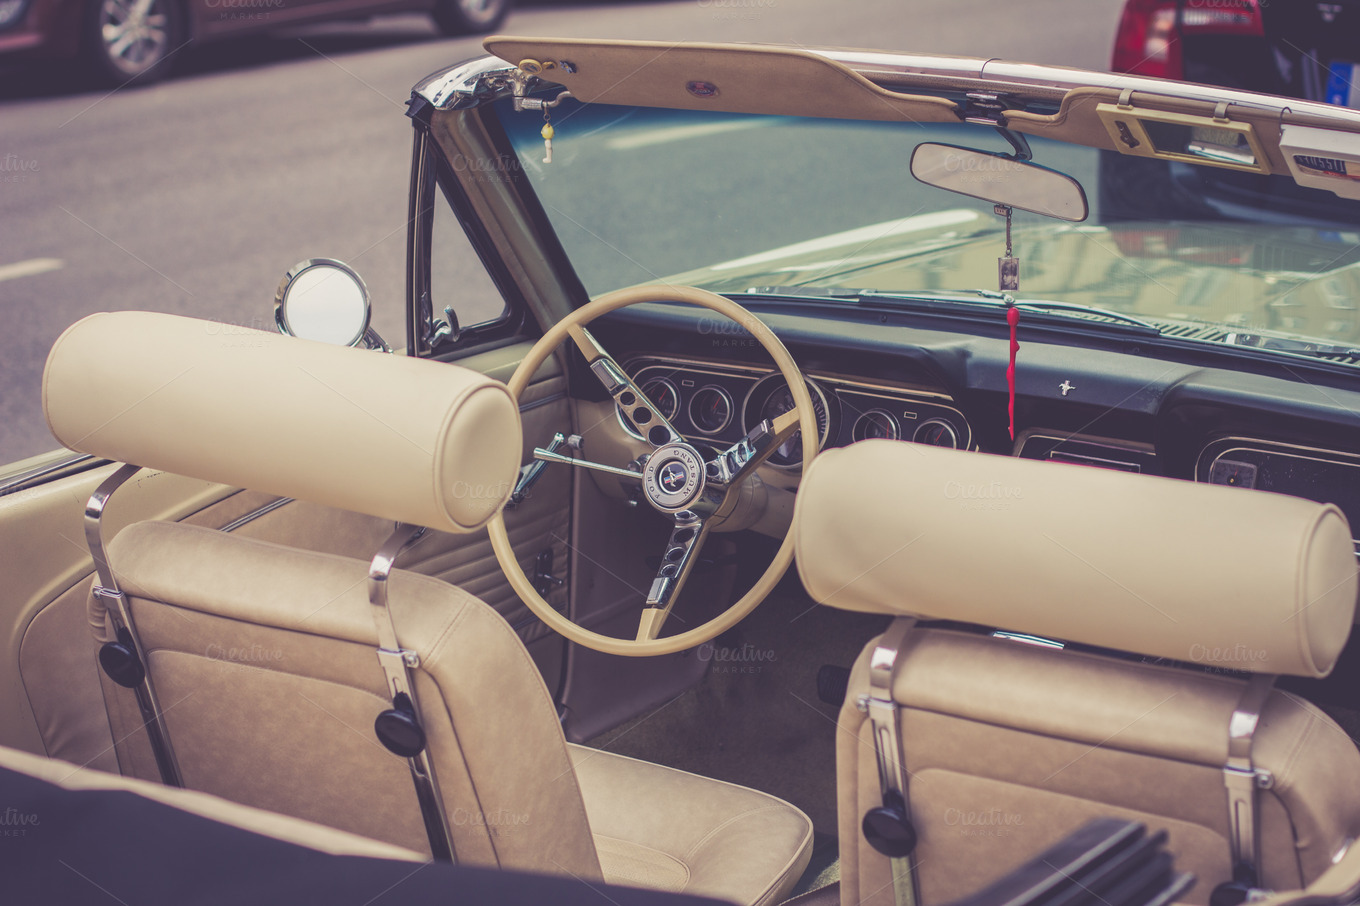 classic beige car interior transportation photos on creative market